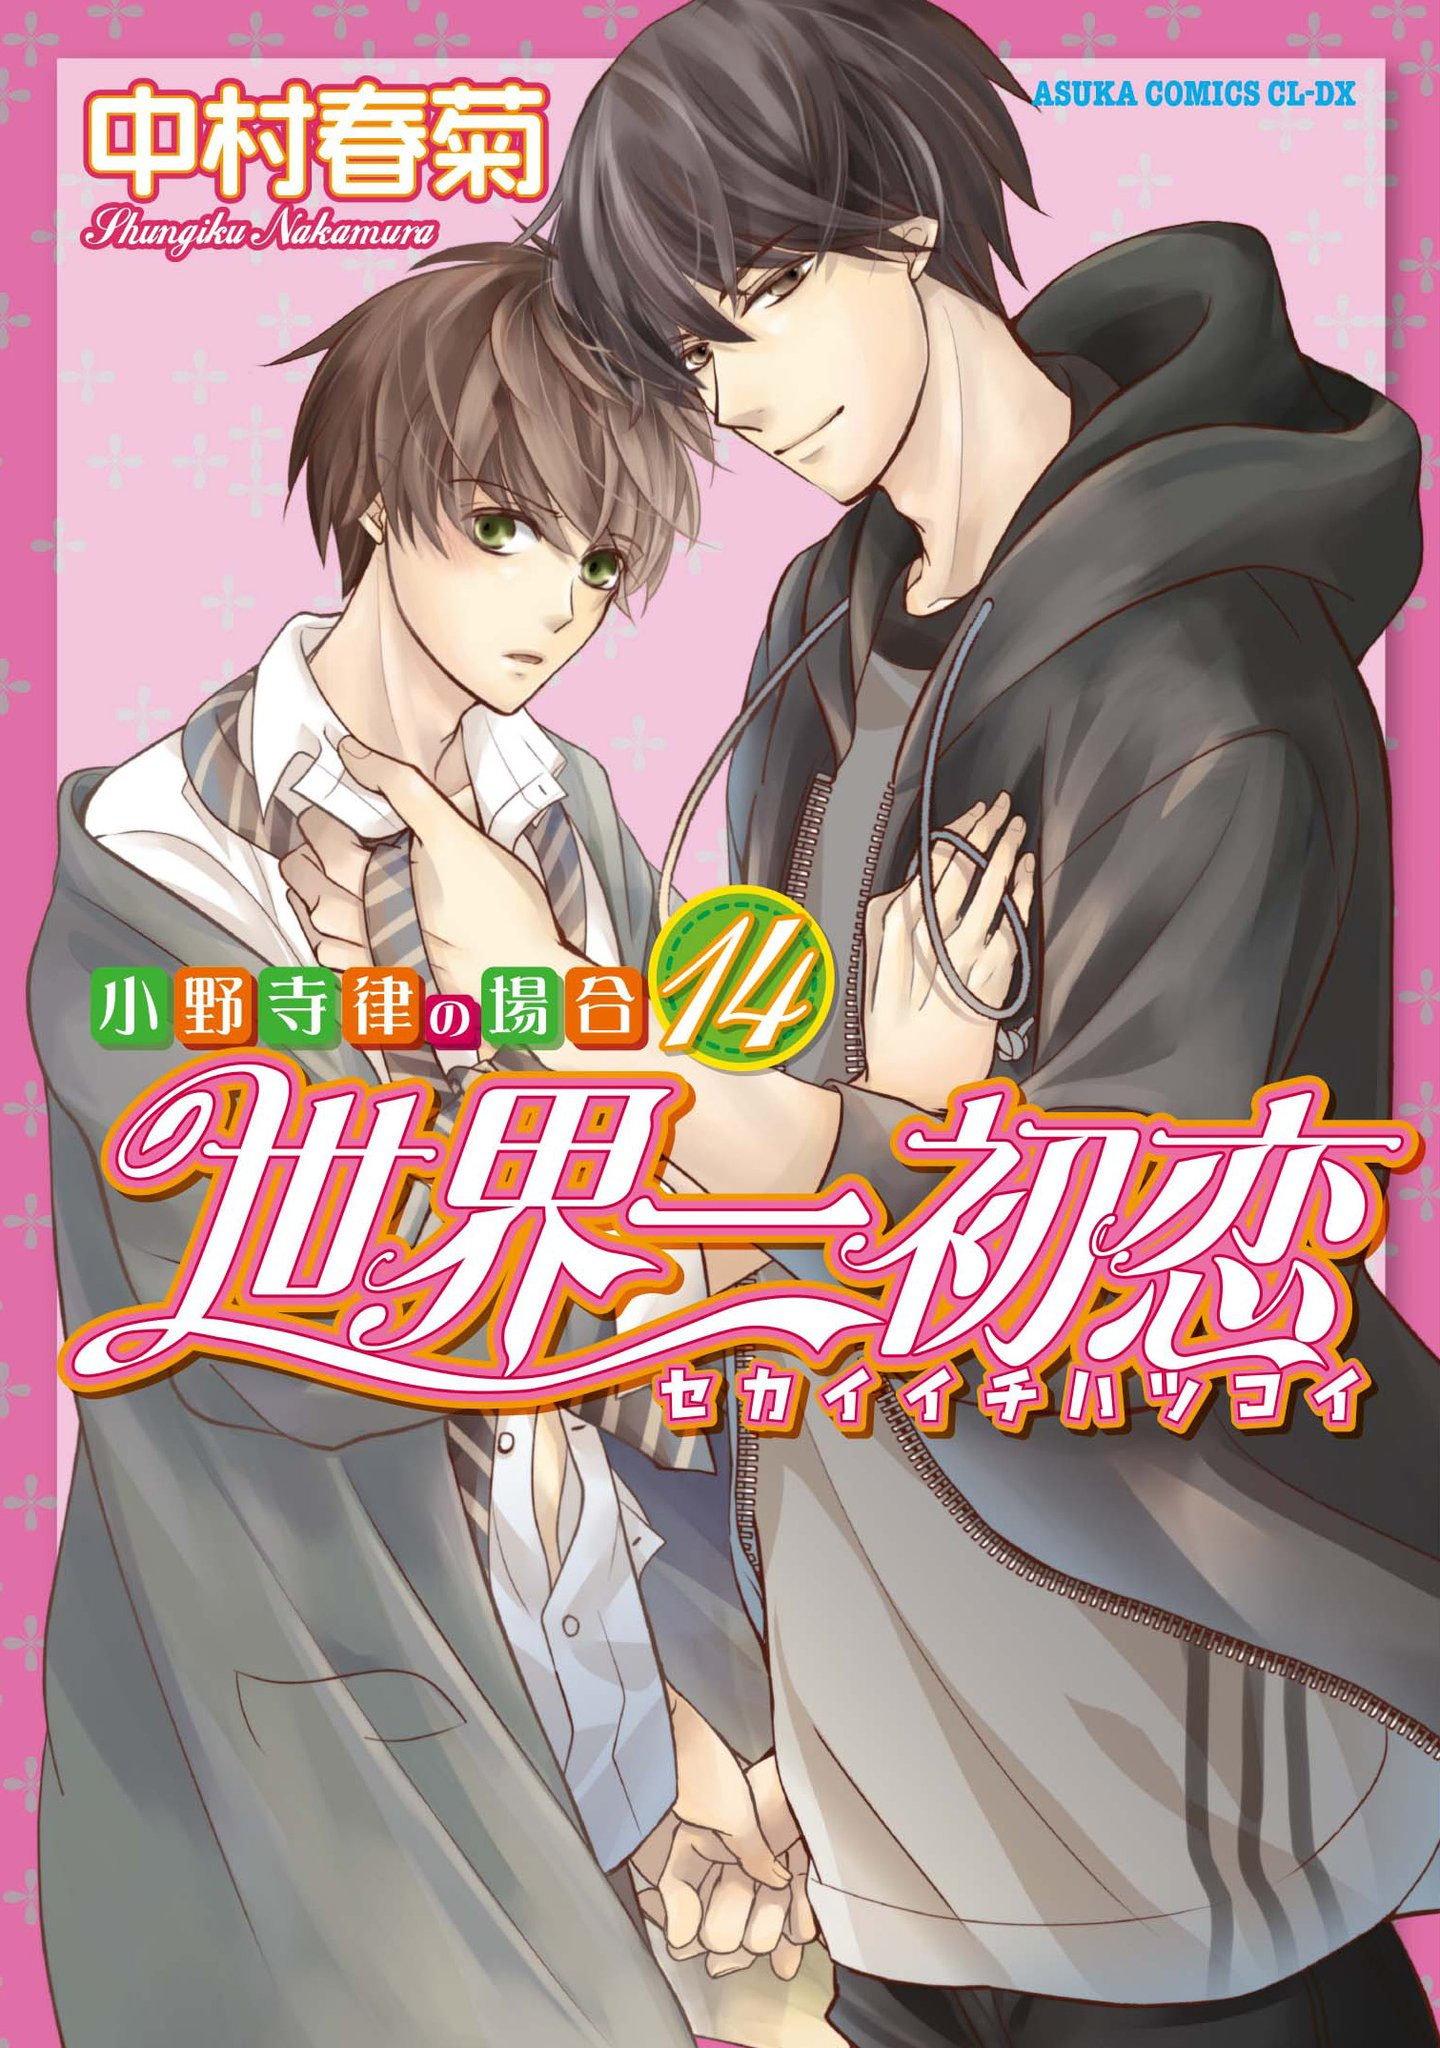 The Case of Ritsu Onodera 10 The Worlds Greatest First Love Vol